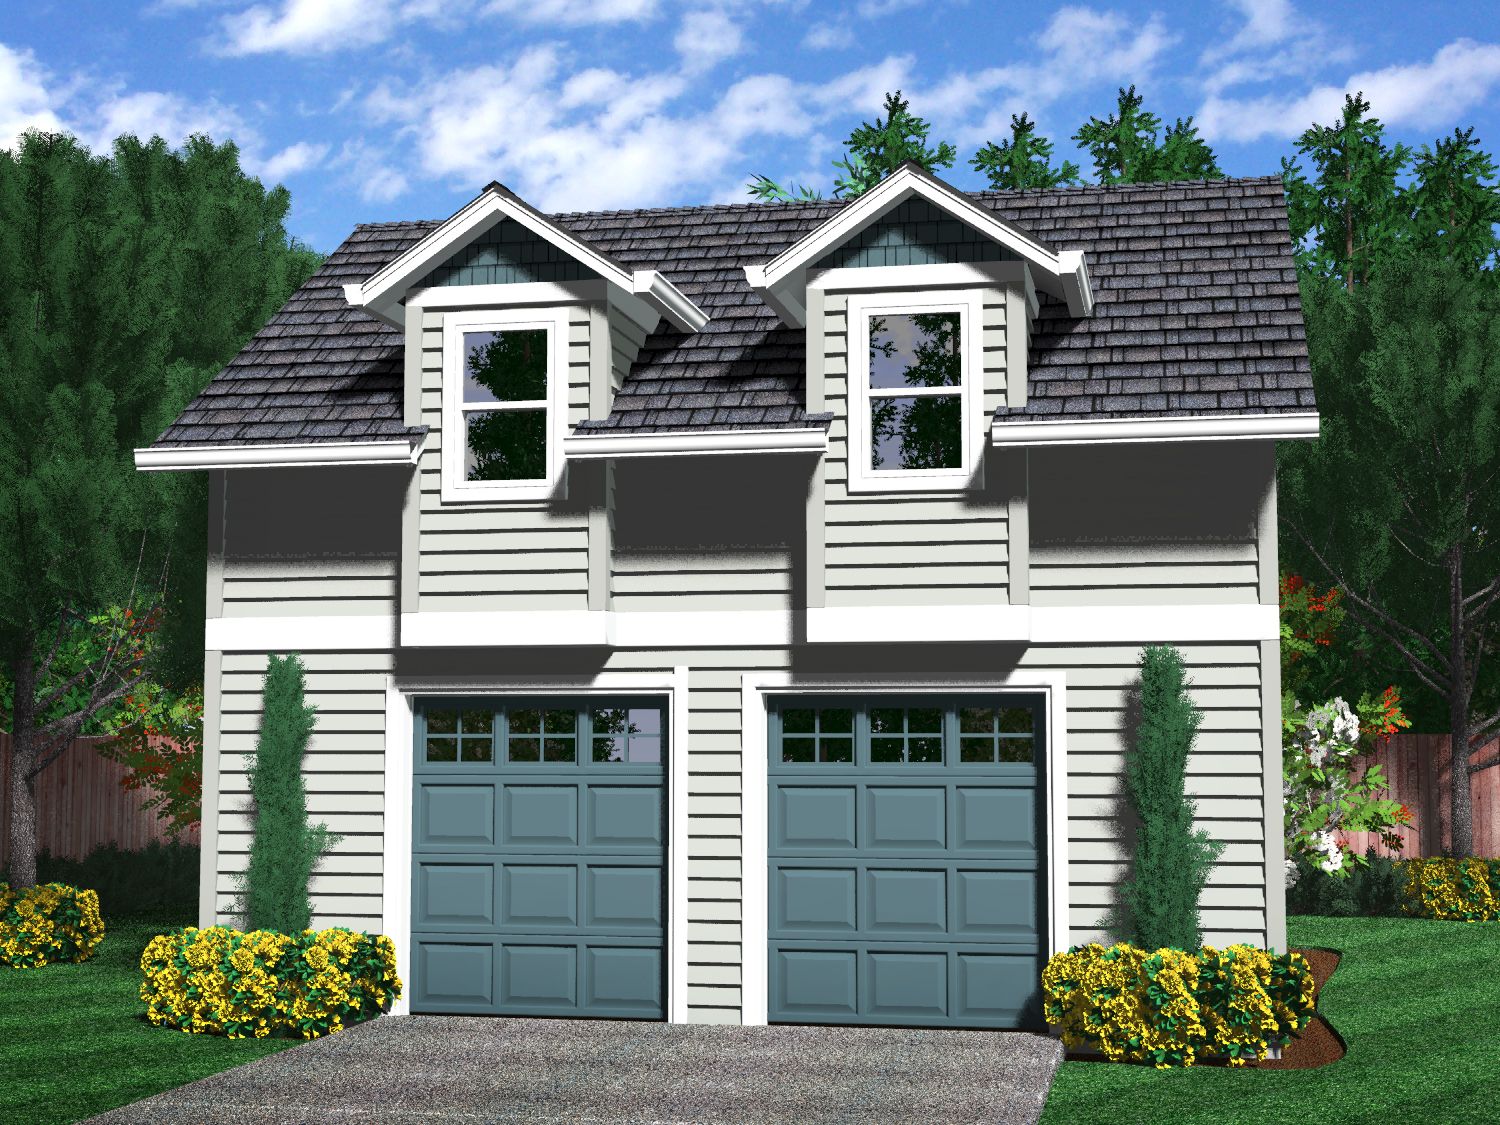 Best of 17 images two room and garage plan home plans for Detached garage blueprints